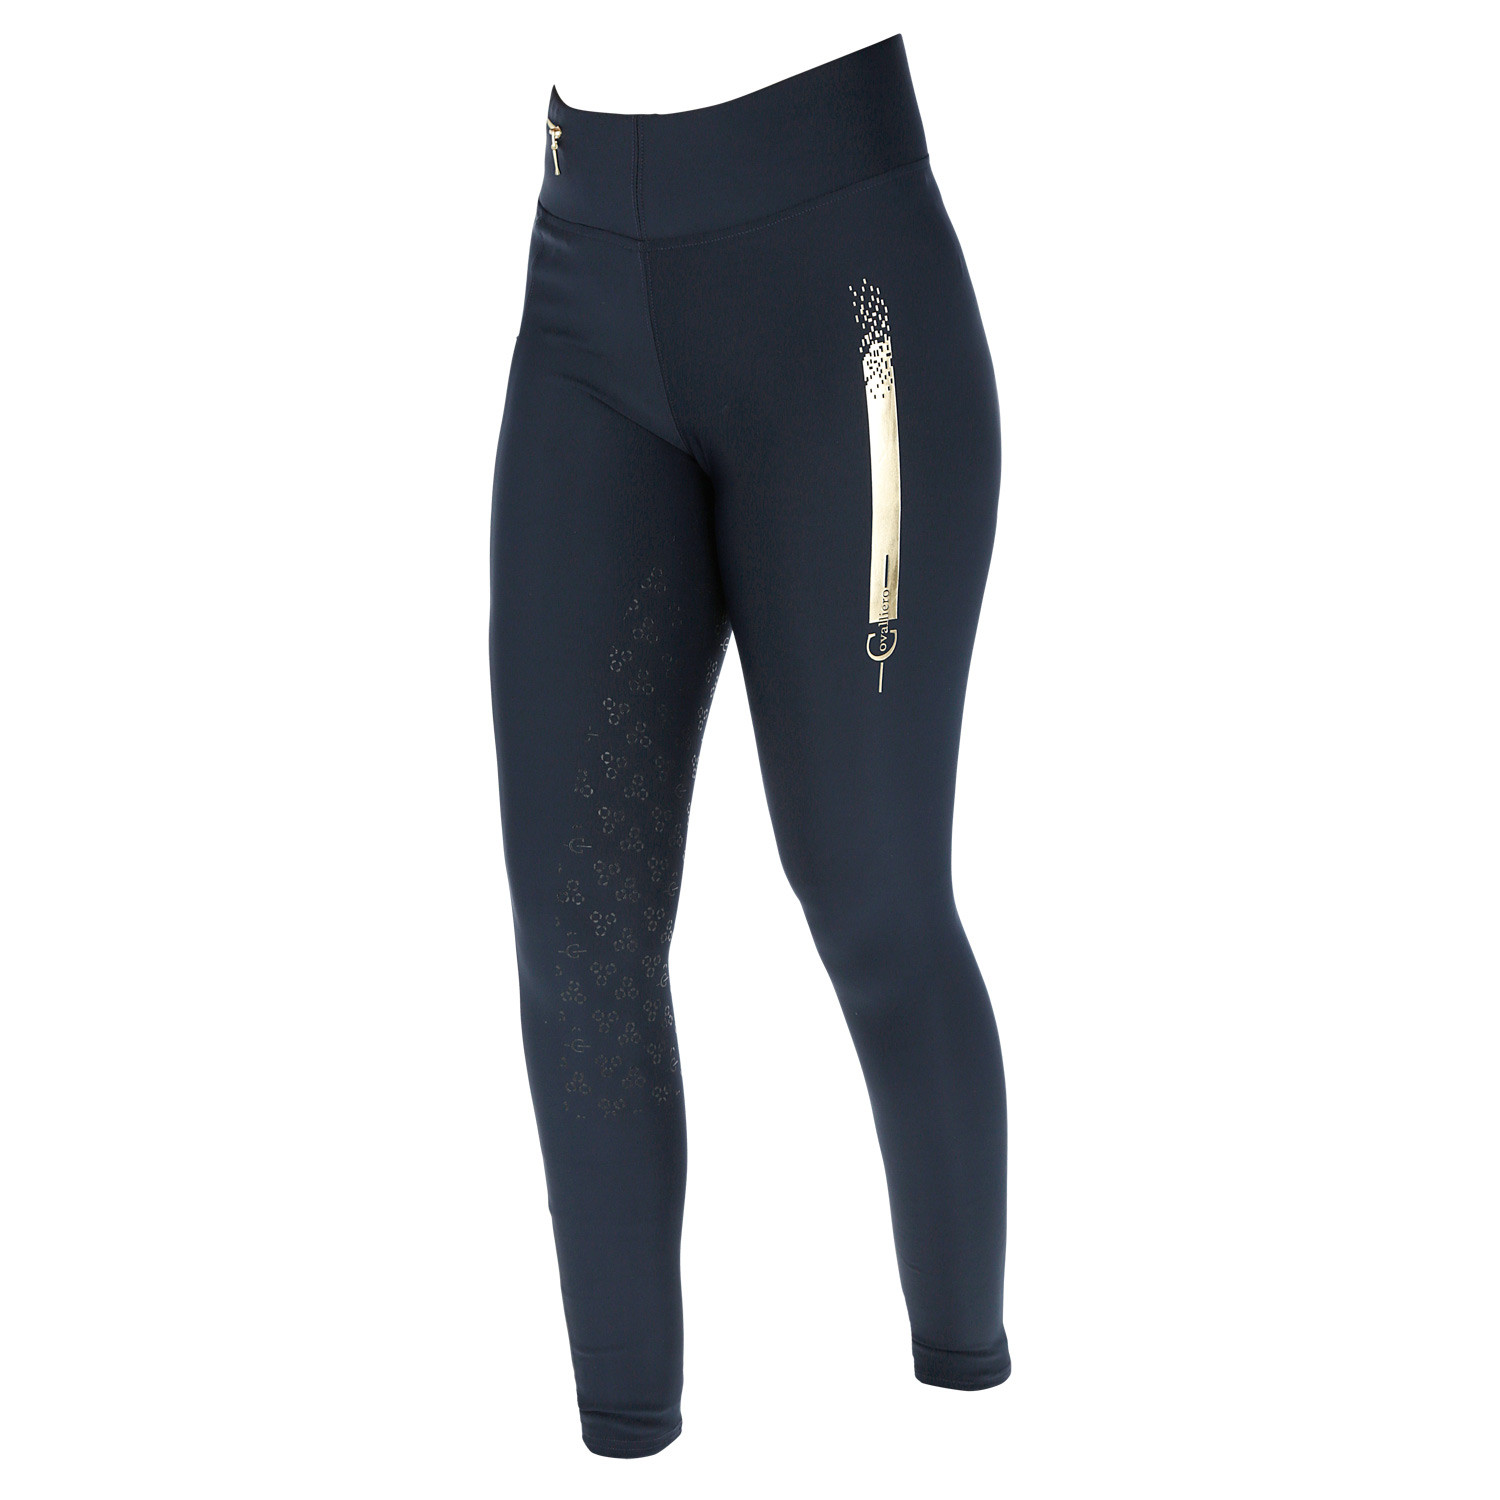 RIDETIGHTS SPORTY CL COVALLIERO